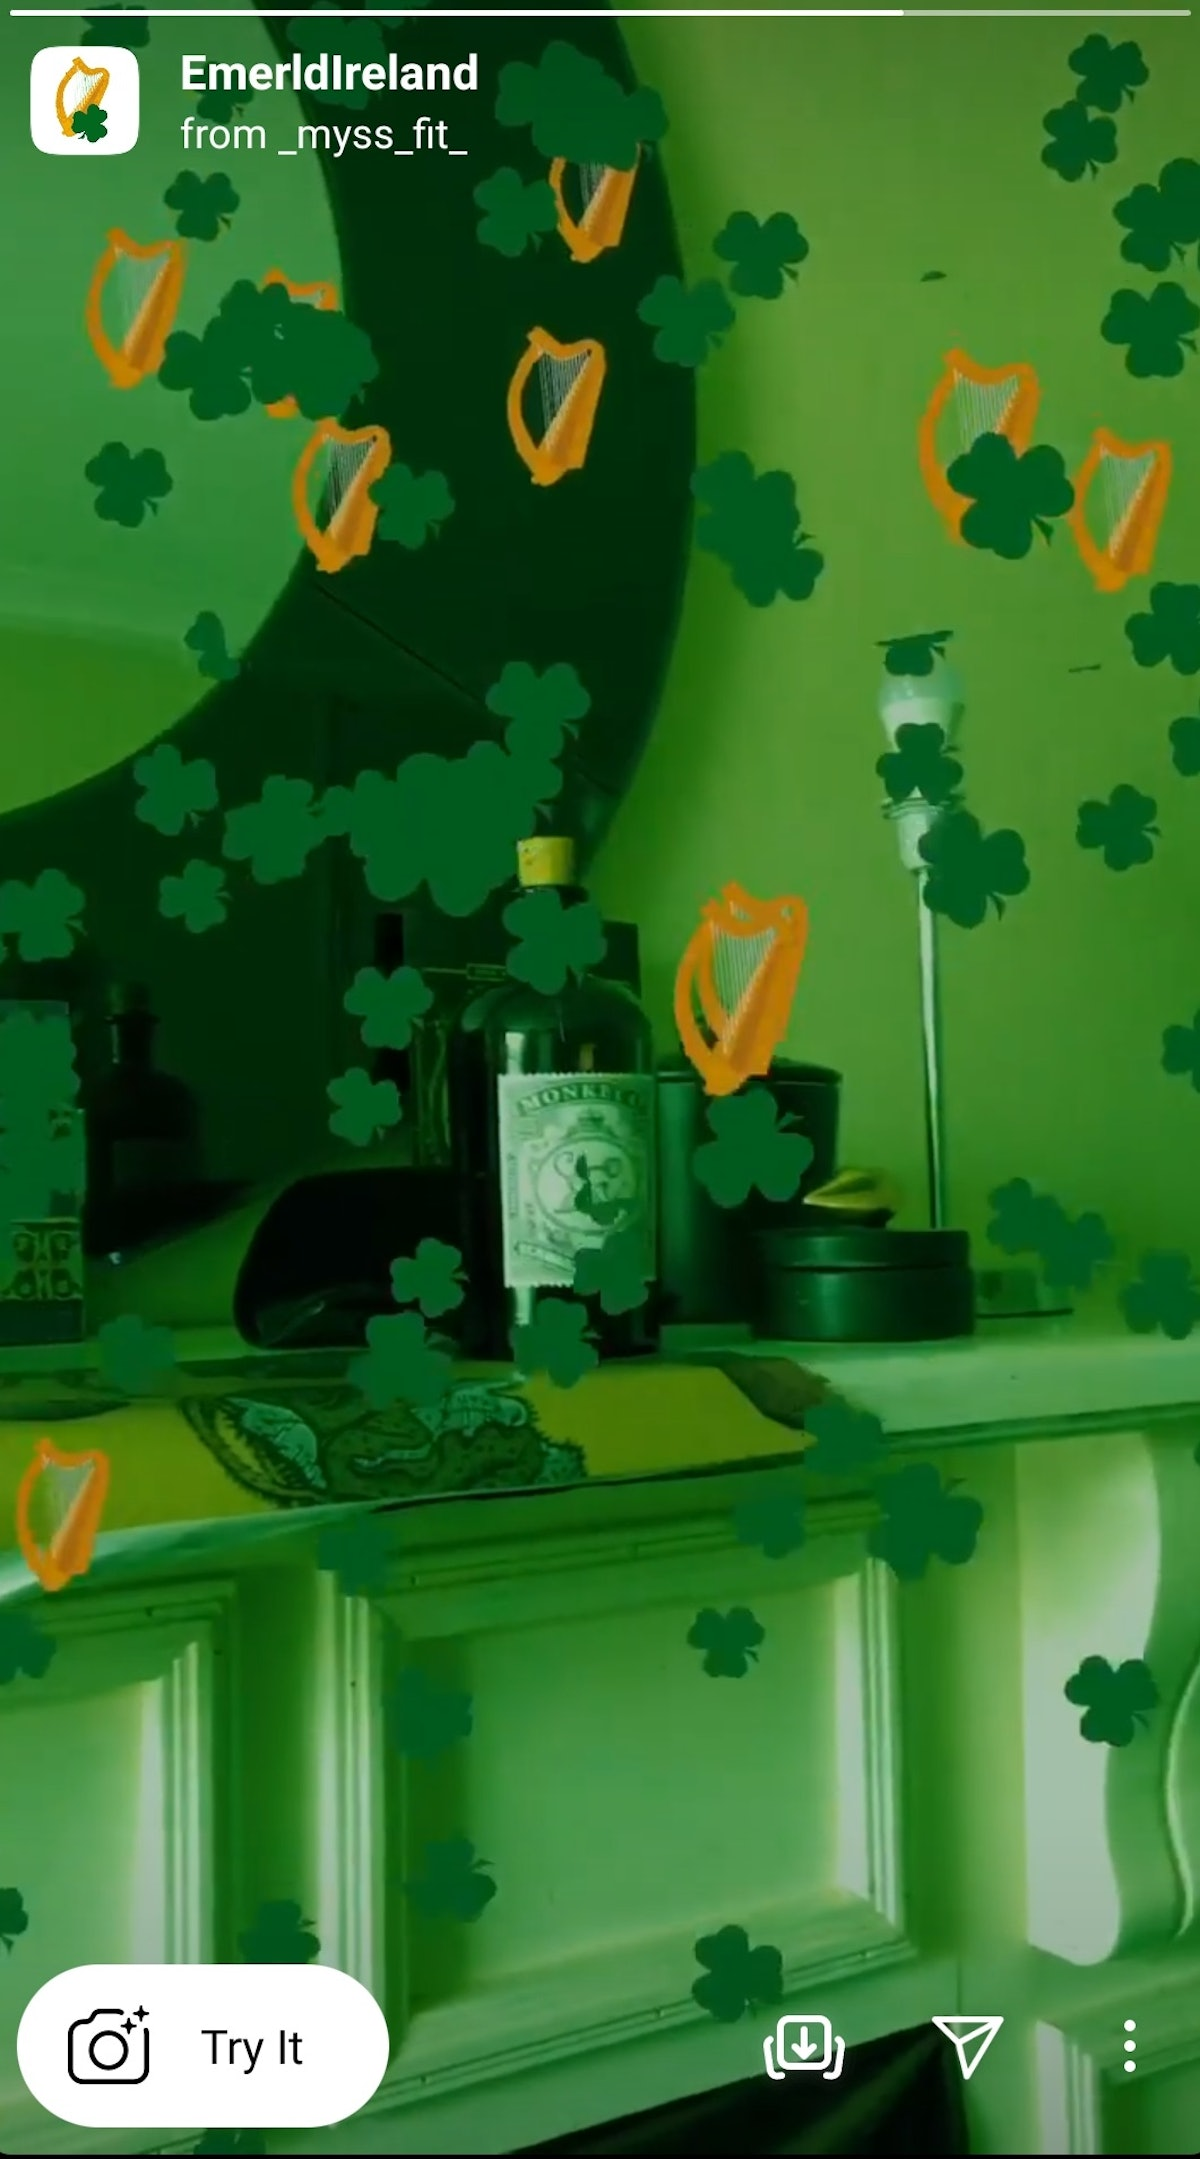 These Instagram filters for St. Patrick's Day 2021 include shamrocks and leprechaun hats.